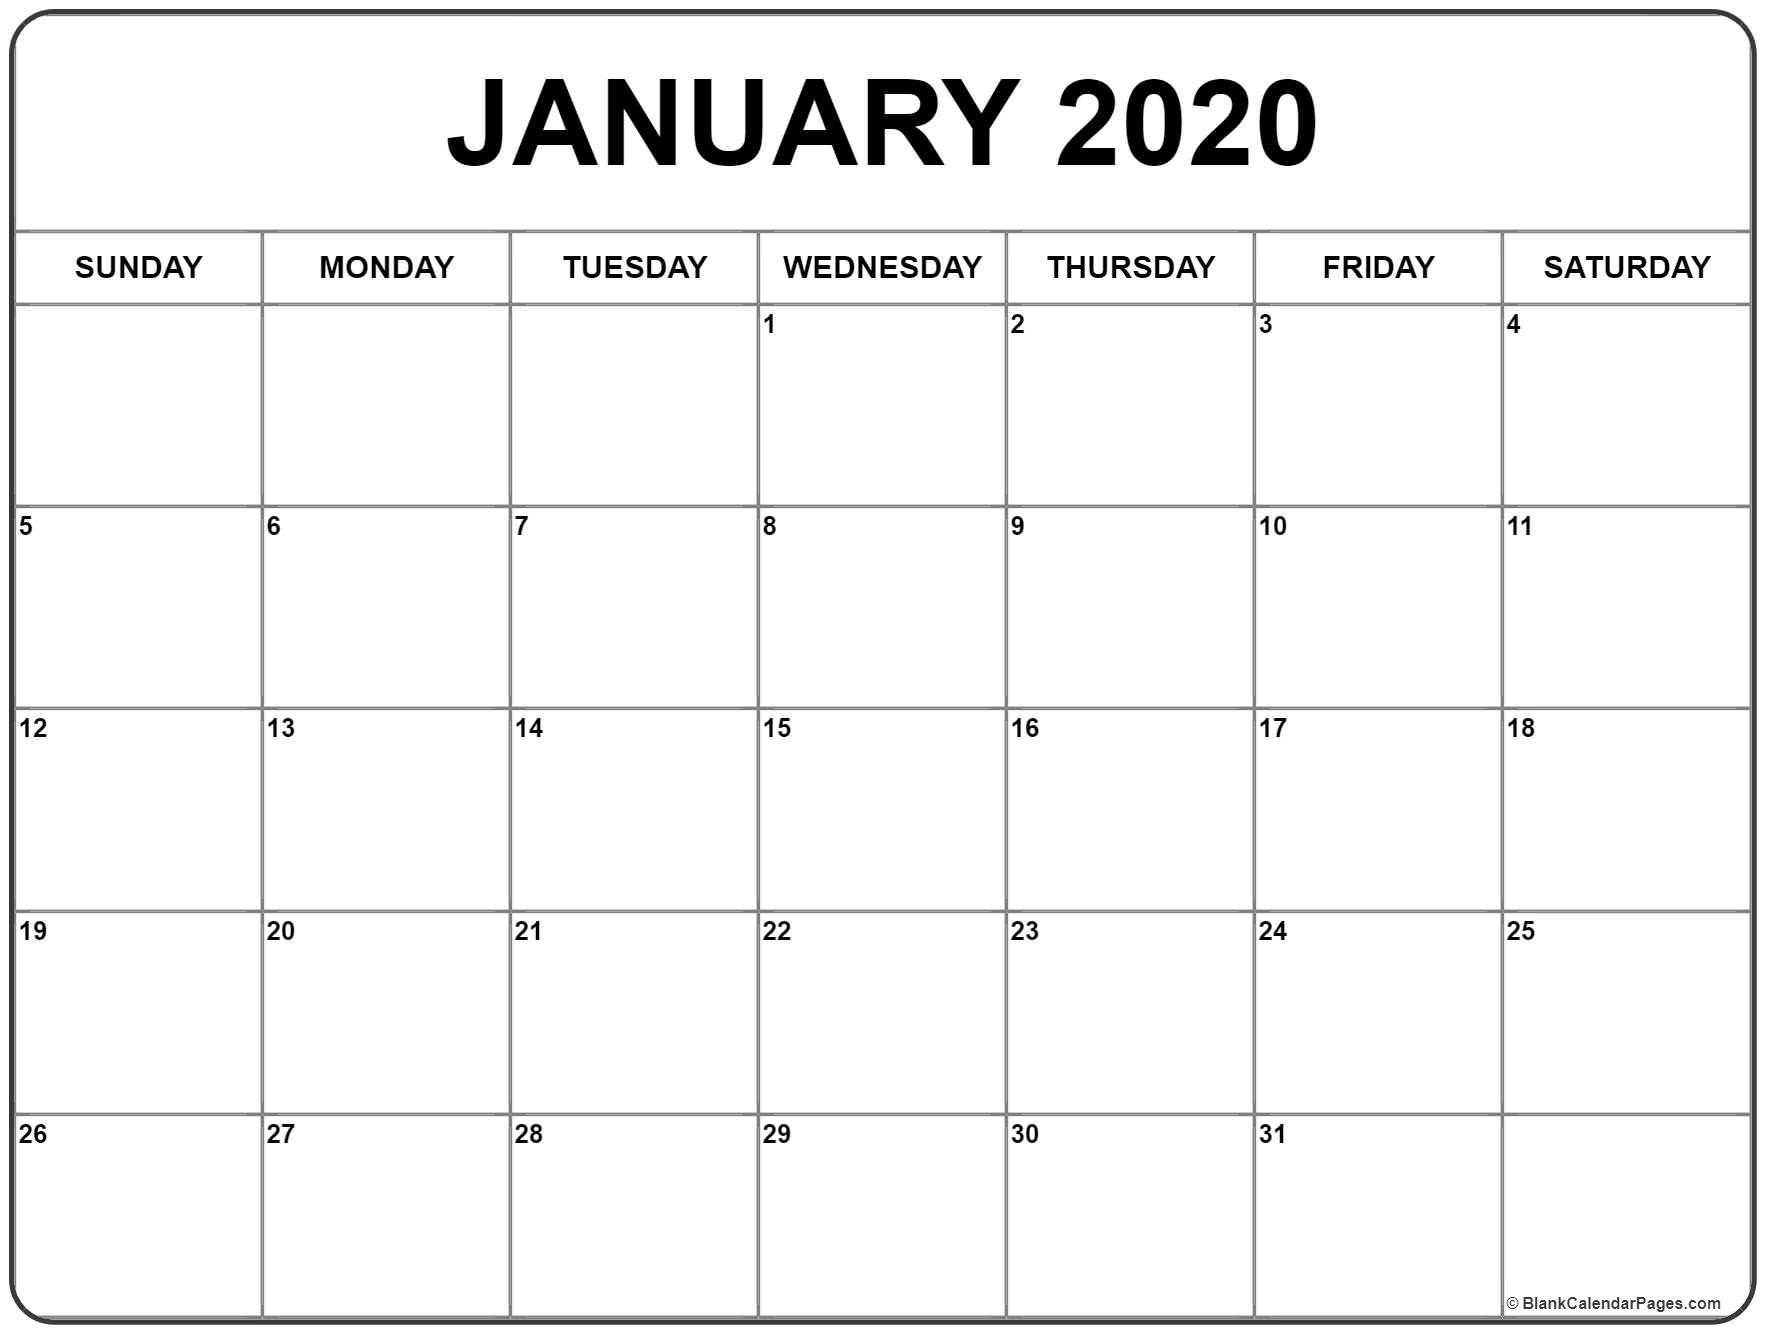 January 2020 Calendar | Free Printable Monthly Calendars-January To June 2020 Calendar